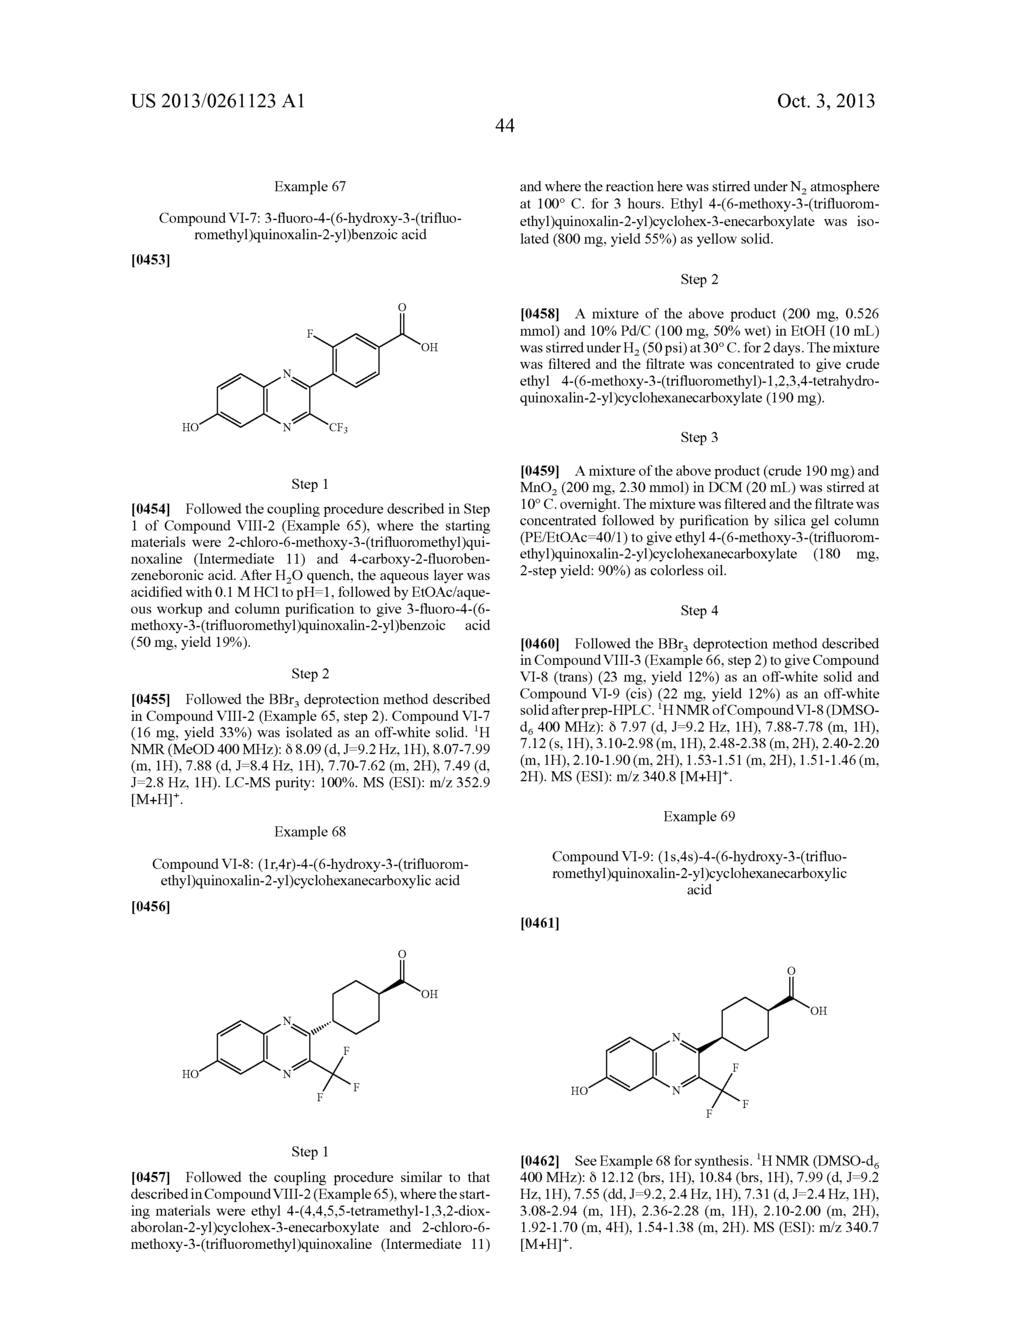 Novel Substituted Bicyclic Aromatic Compounds as S-Nitrosoglutathione     Reductase Inhibitors - diagram, schematic, and image 45